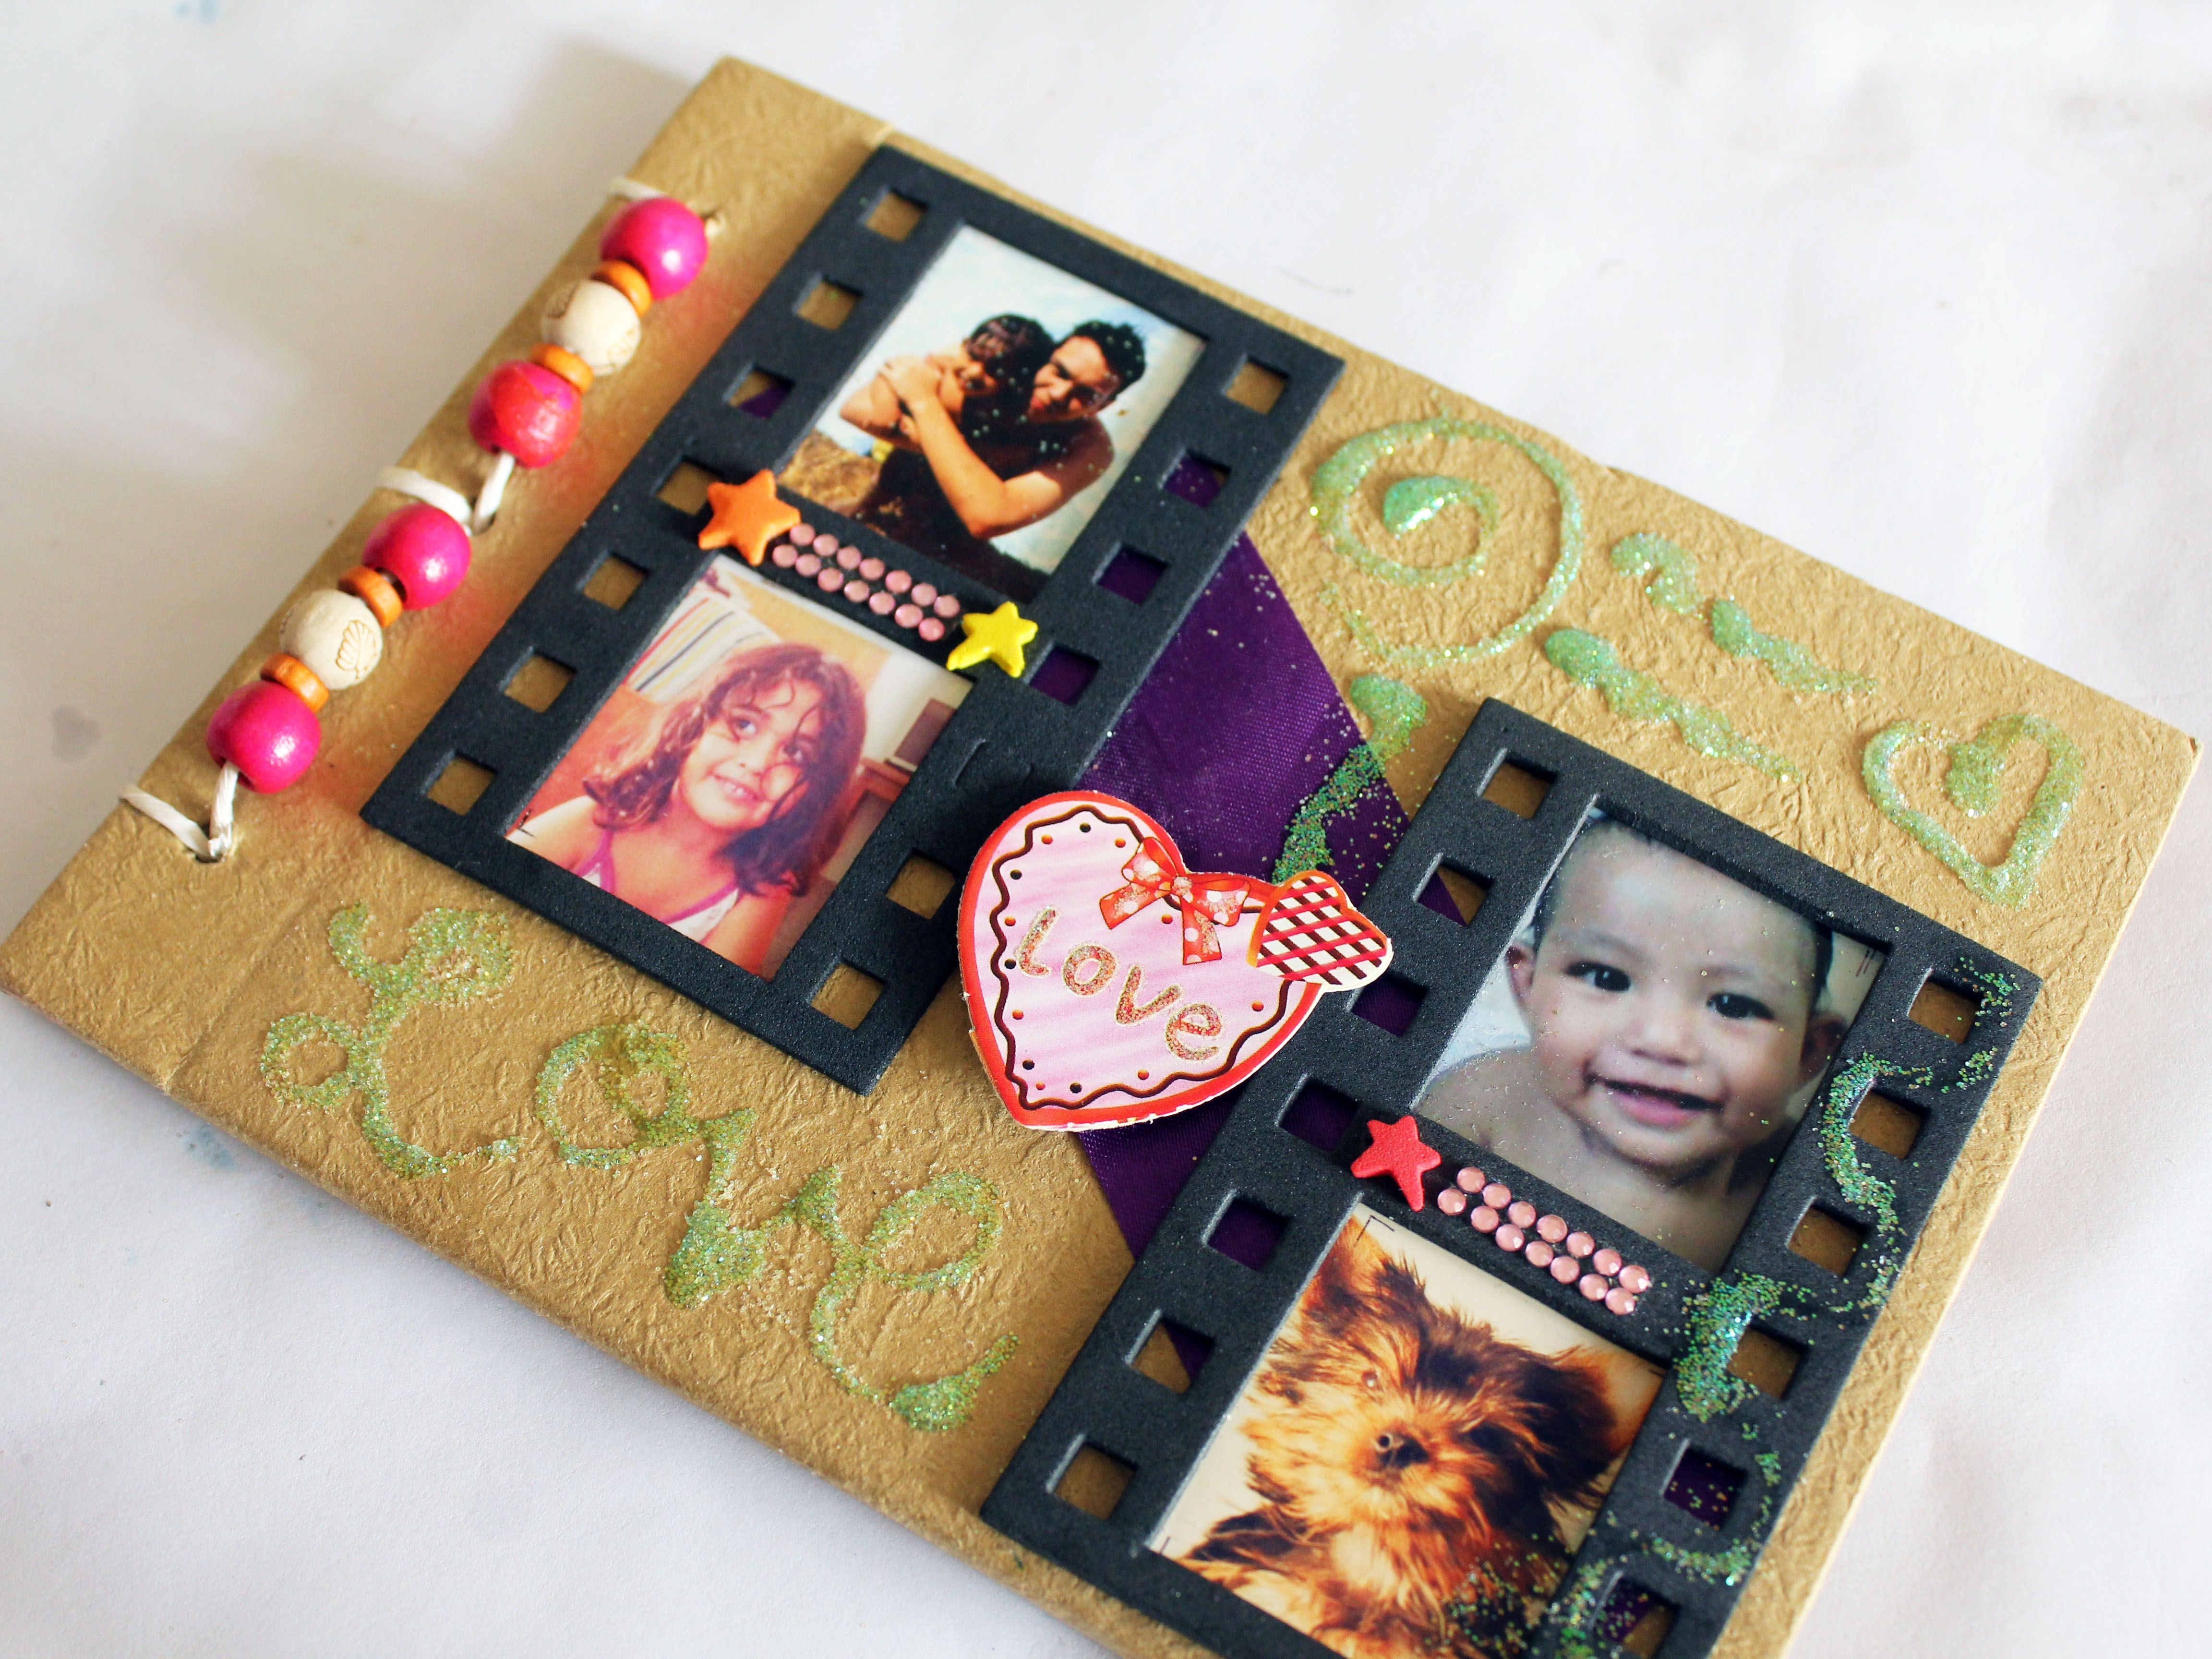 Scrapbook ideas many pictures - A Best Friends Scrapbook Is A Way To Keep A Record Of Mementos Tokens